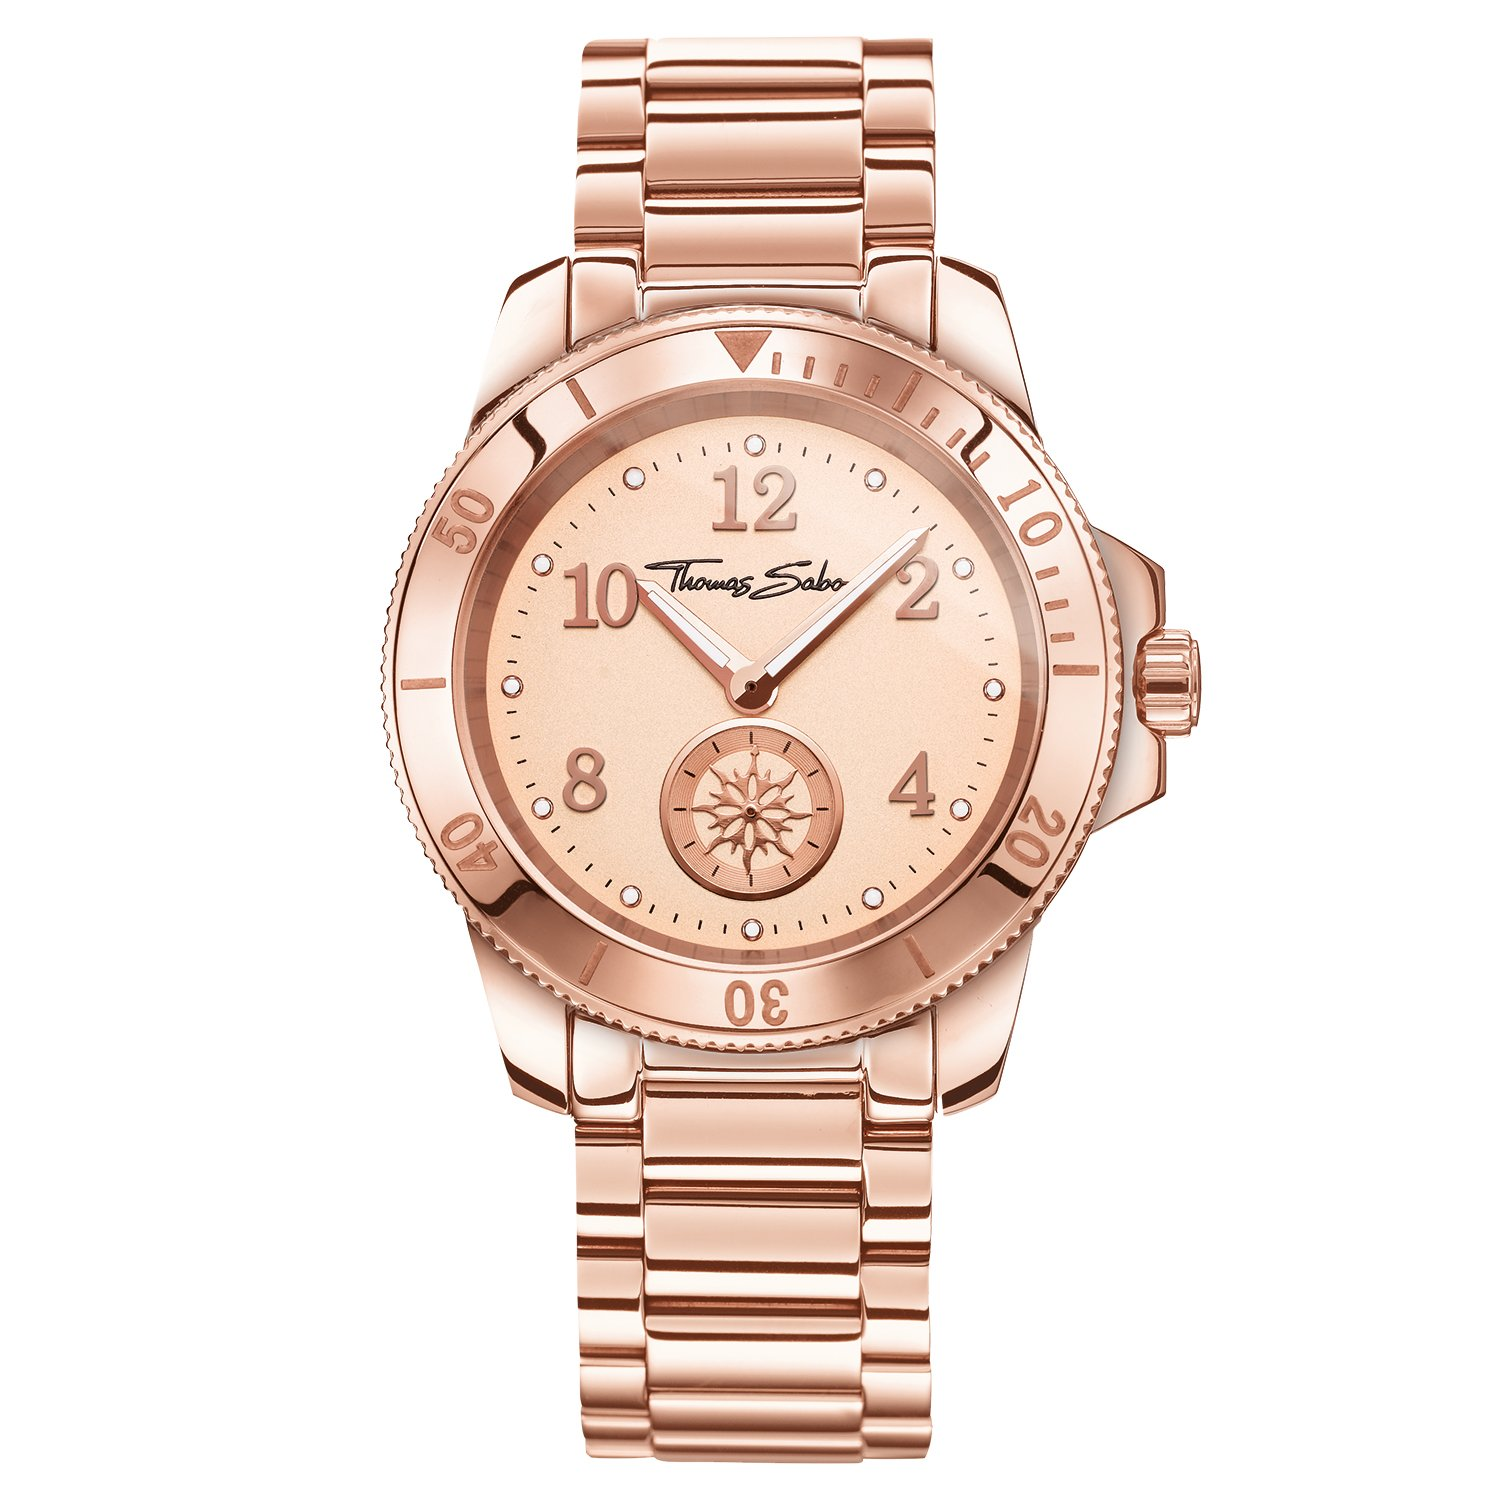 Thomas Sabo Watches - Damen Damenuhr GLAM CHIC  - Edelstahl